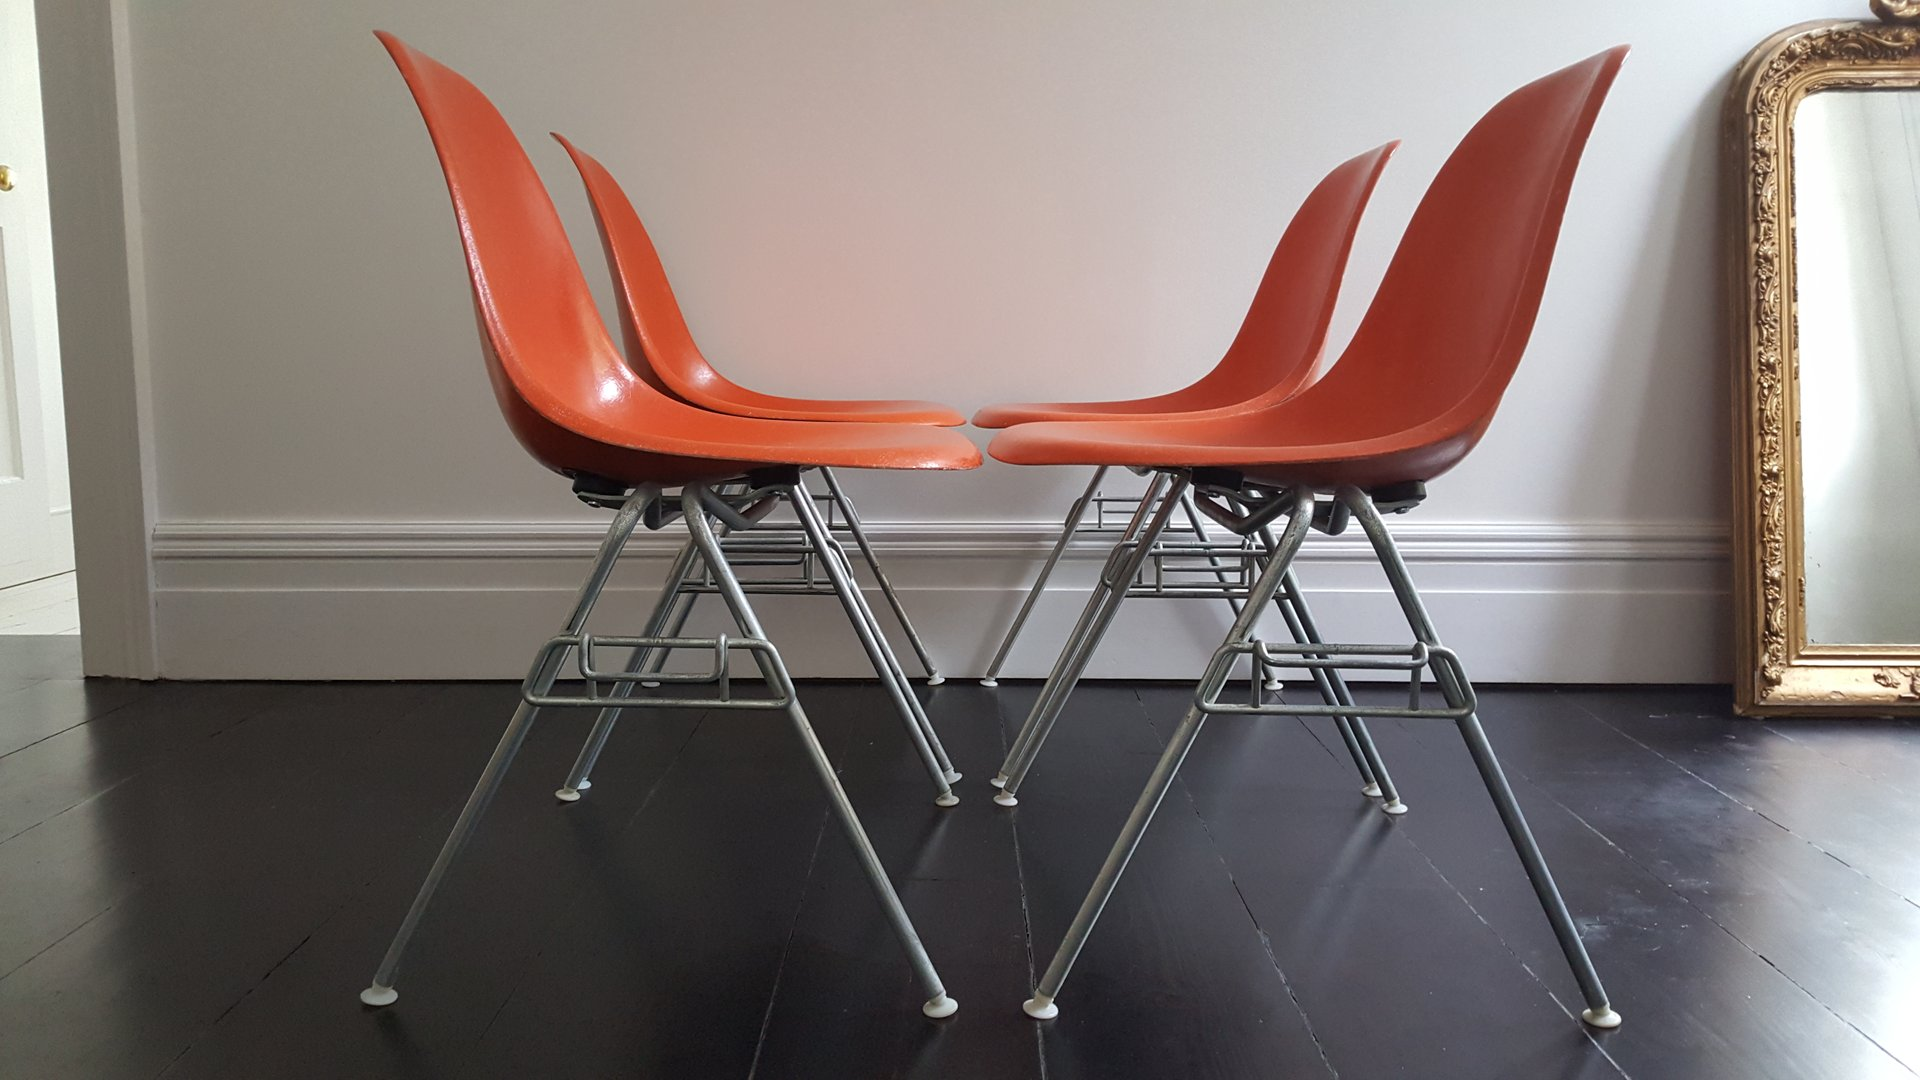 vintage dss fiberglass shell chairs by charles ray eames for herman miller set of 4 for sale. Black Bedroom Furniture Sets. Home Design Ideas